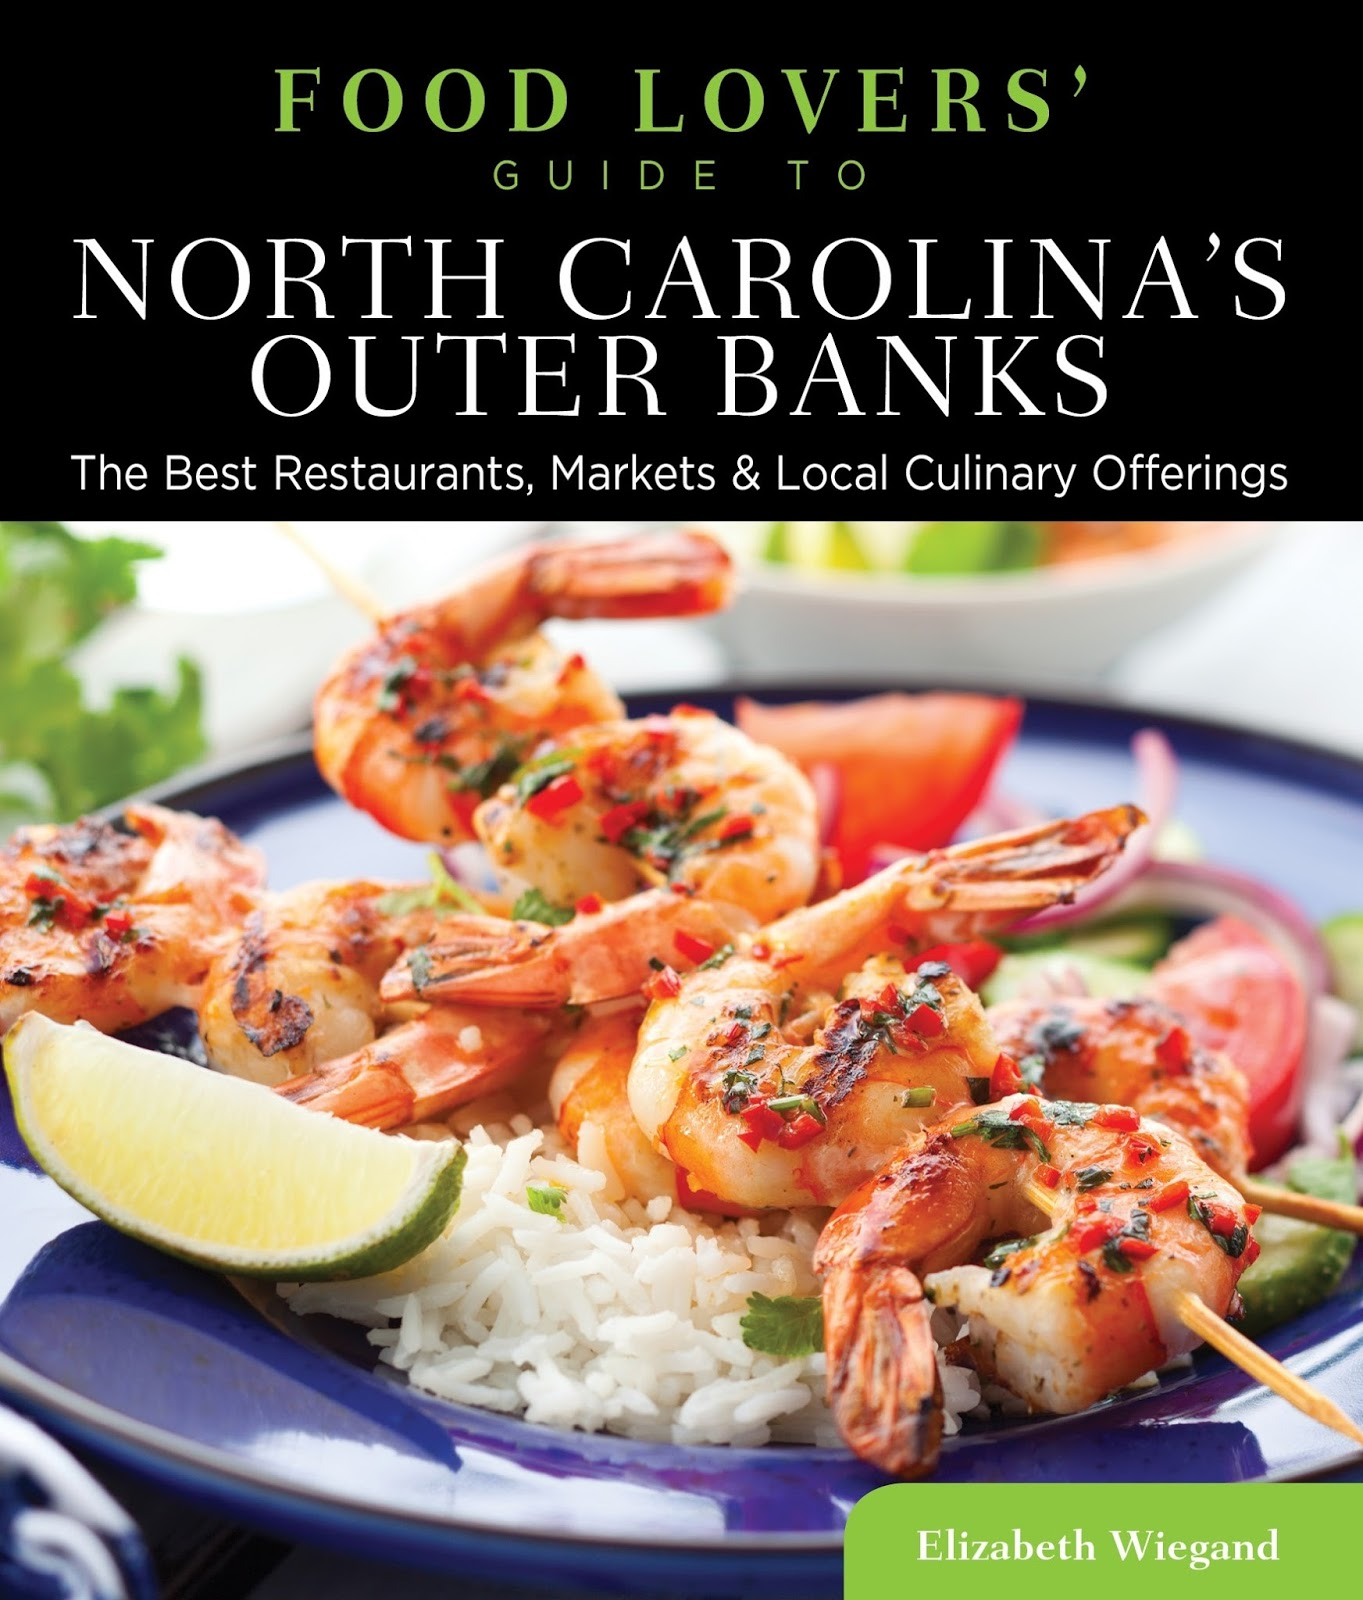 California Pizza Kitchen Virginia Beach: Carolina Foodie: NEW! FOOD LOVERS' GUIDE TO NC'S OUTER BANKS